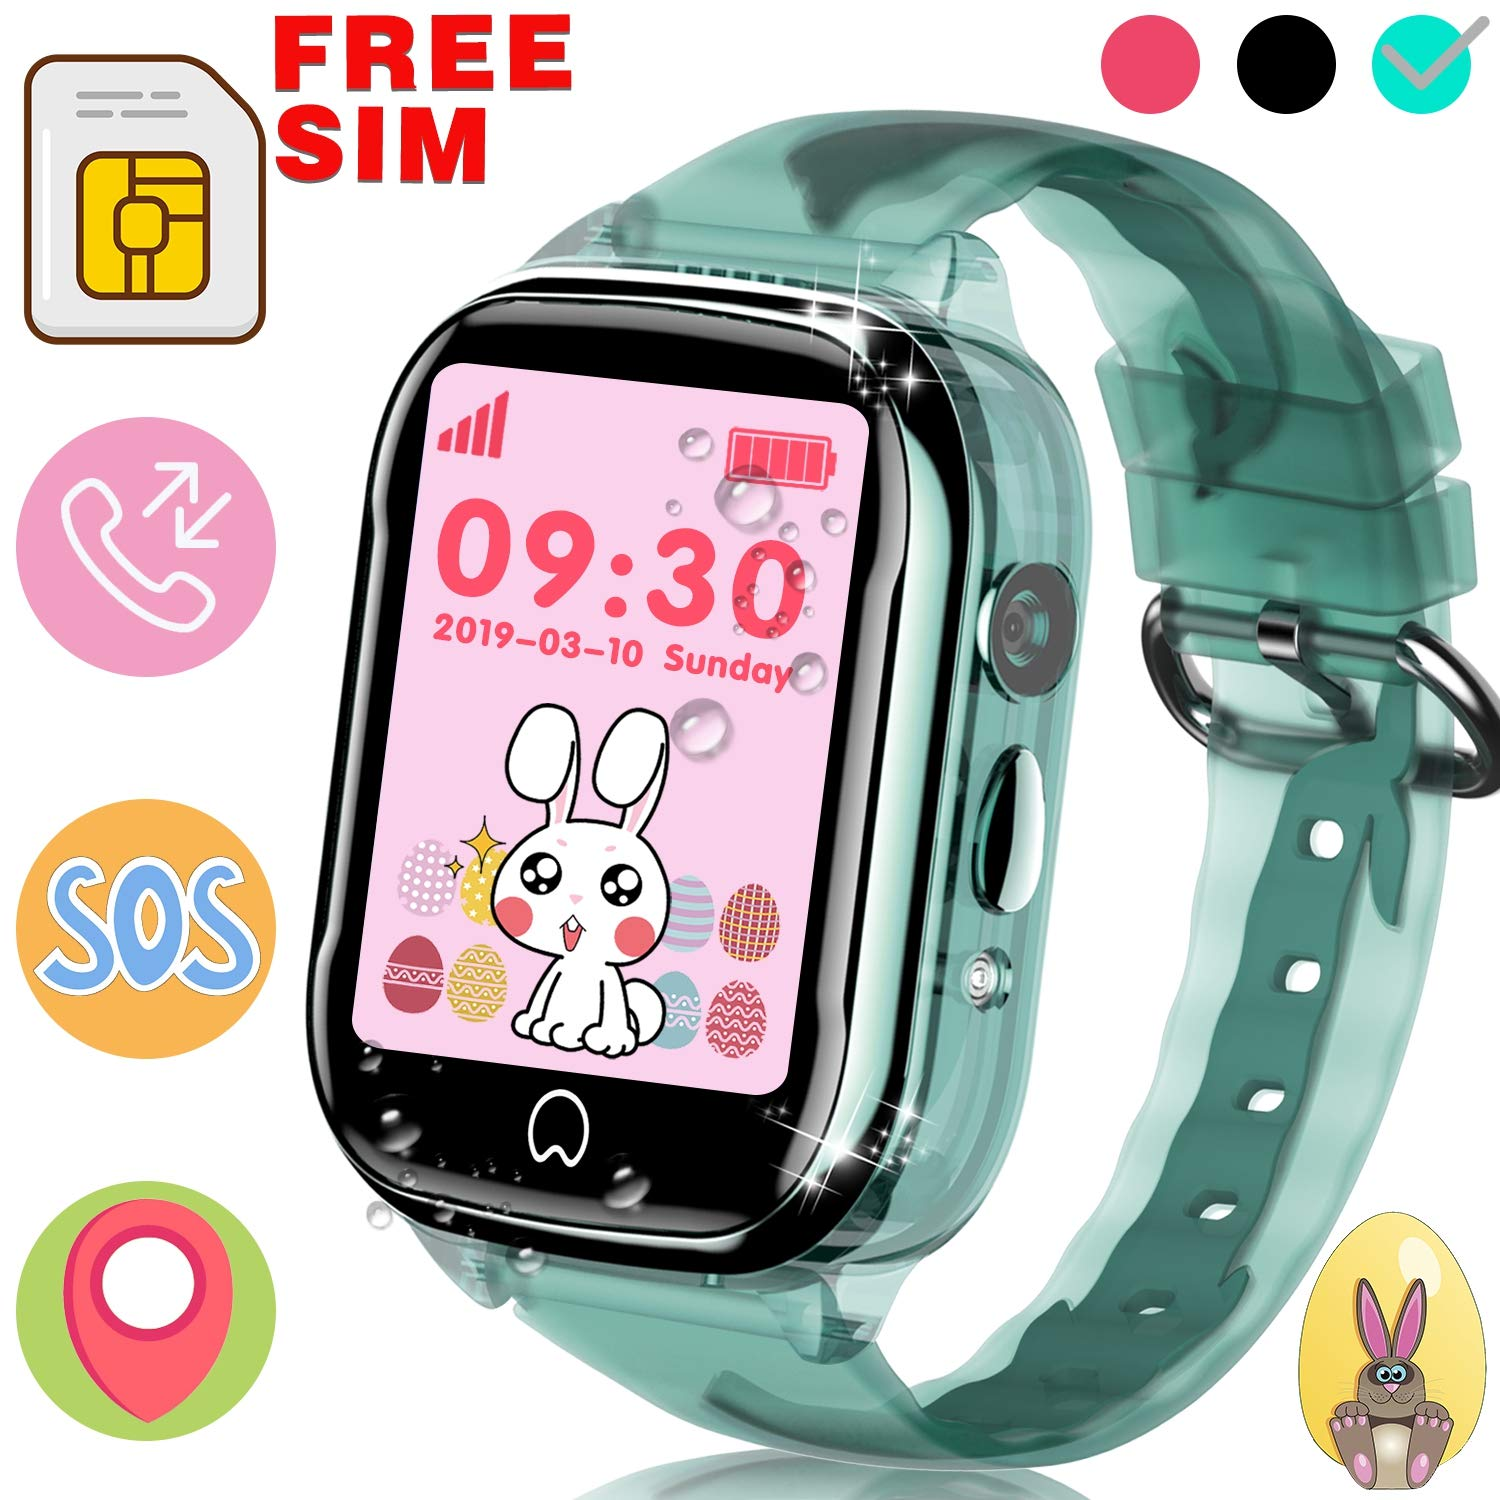 (4pink) - Kids Game Smart Watch - Digital Wrist Sport Smartwatch 3-12 Year Boys Girls with 3.8cm Touchscreen Camera Pedometer Alarm Outdoor Activity Fitness Tracker Holiday Learning Toy School Gift B07C7SR9ZG 4pink